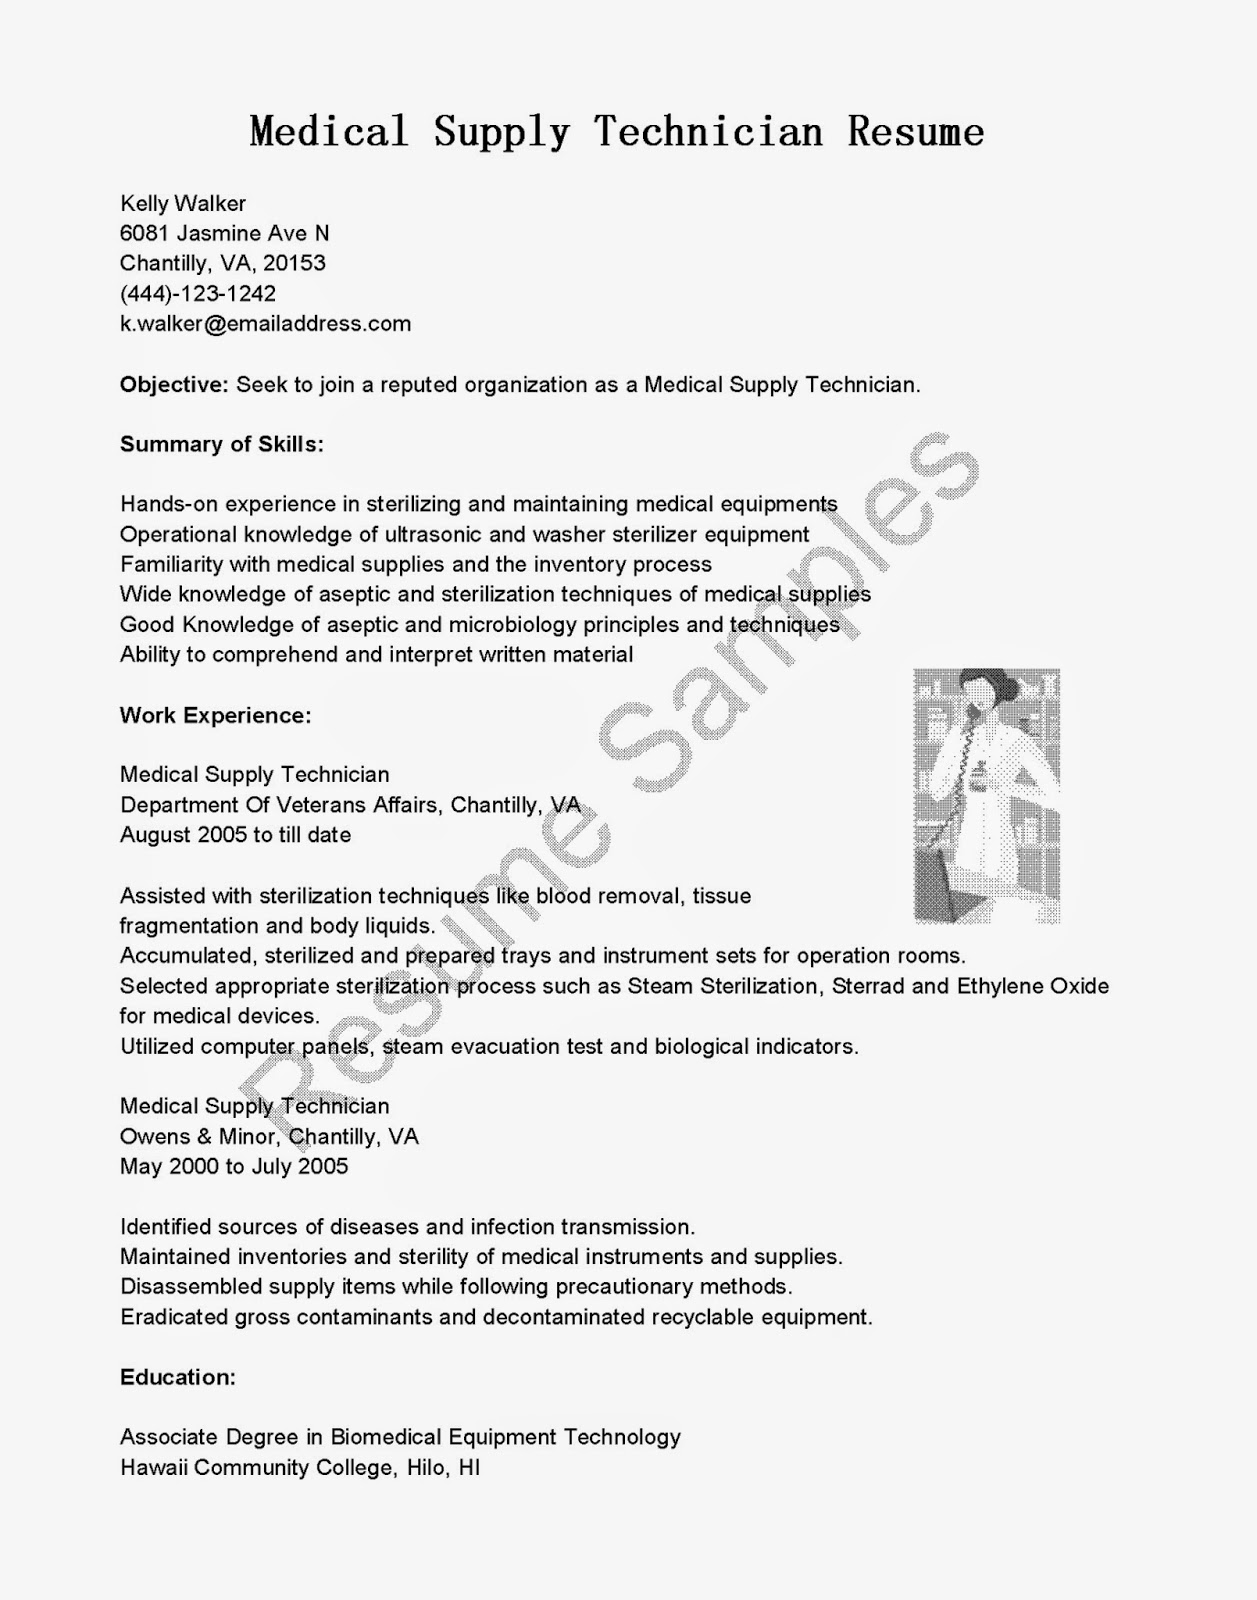 Medical Laboratory Scientist Sample Resume Resume Template Types Of  Computer Applications Jobresumepro Com Laboratory Manager Resume  Medical Laboratory Technician Resume